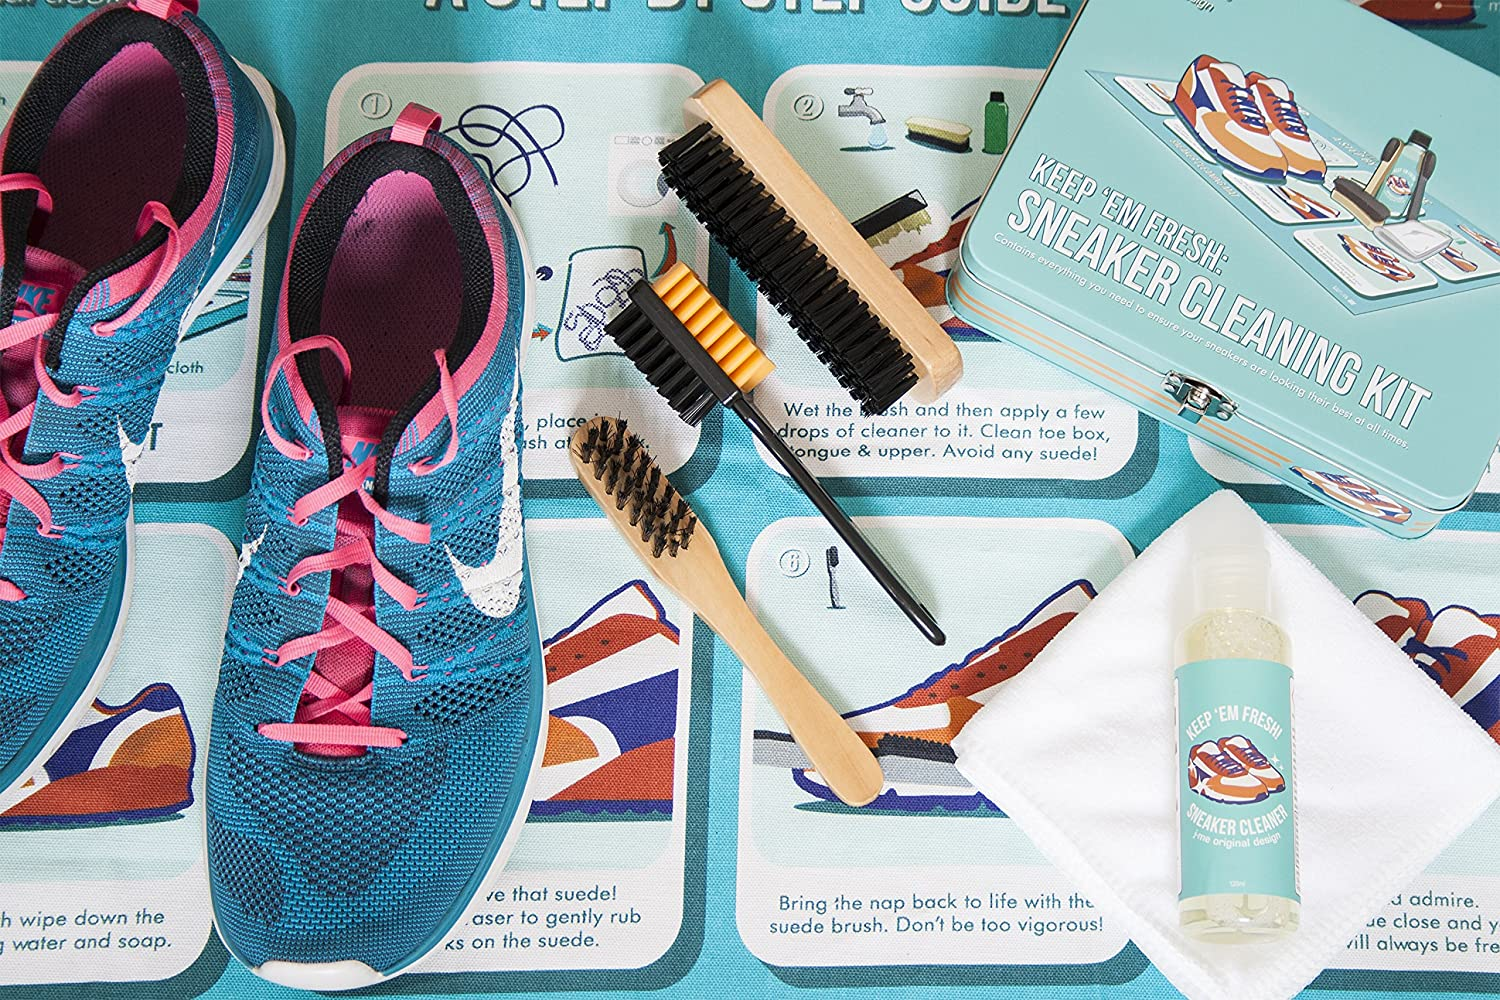 c7444f09e Amazon.com  j-me Sneaker Cleaning Kit - Keep Your Sneakers Fresh All The  time.  Home   Kitchen